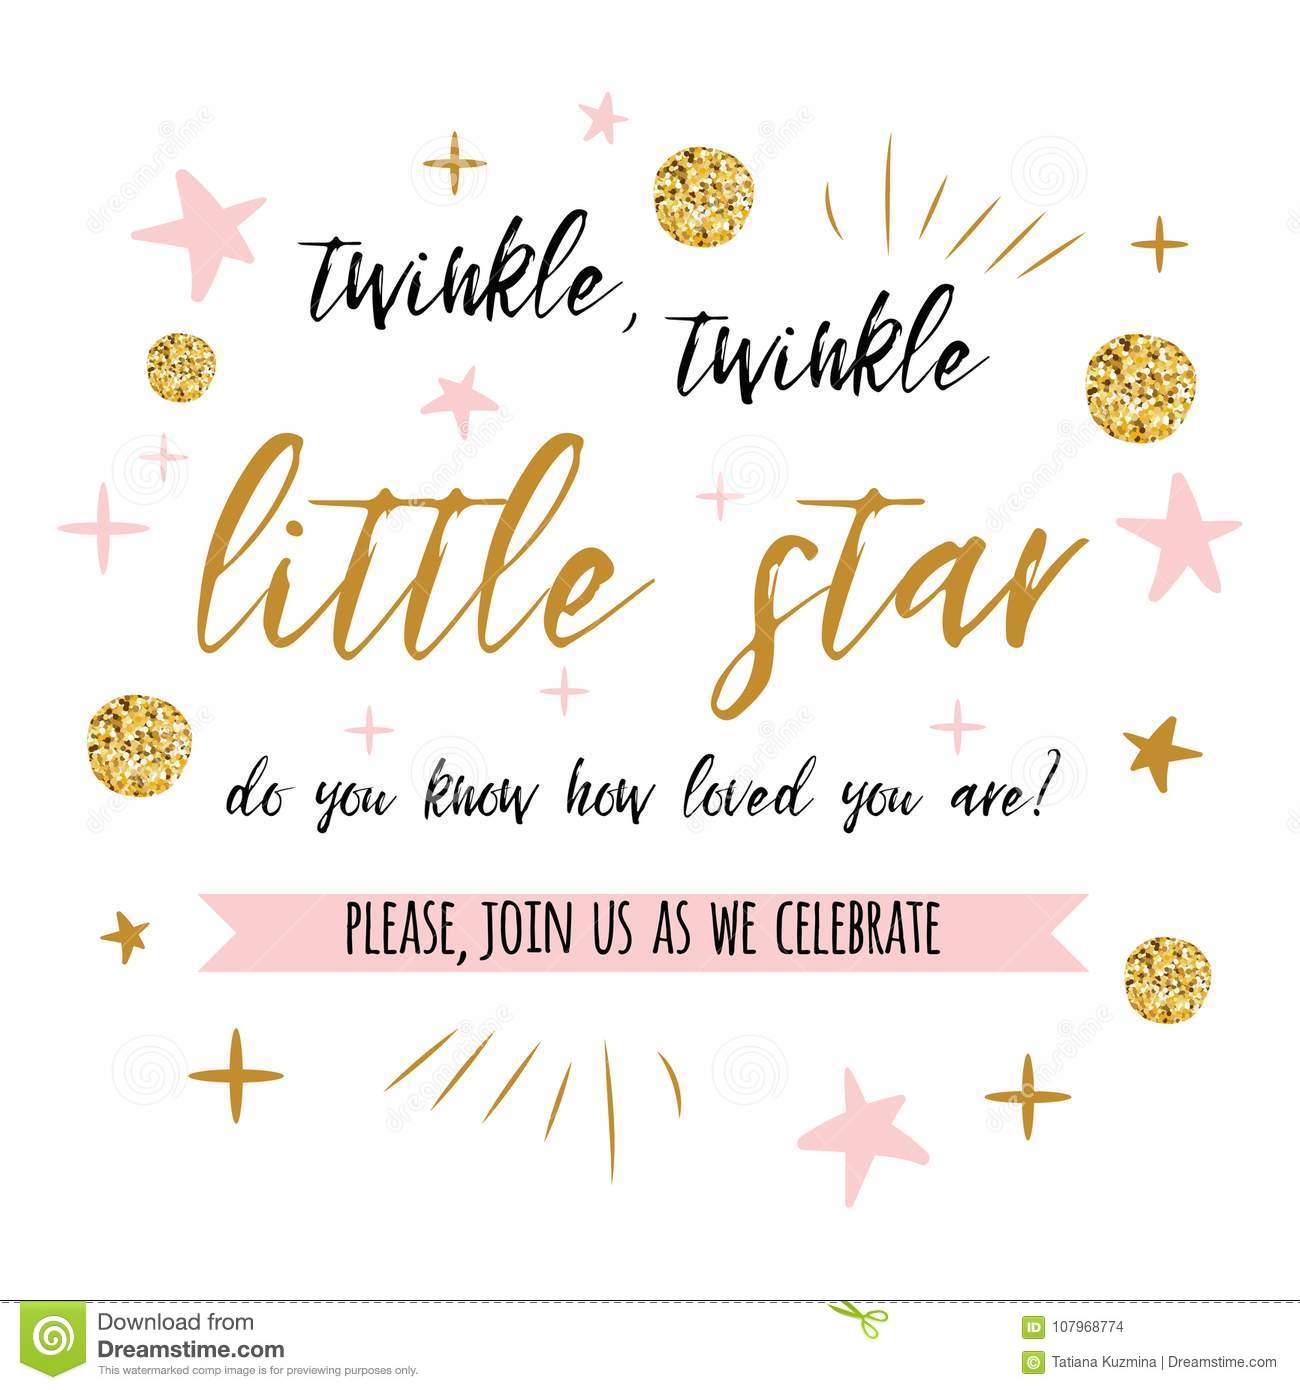 Twinkle Twinkle Little Star Text With Gold Polka Dot And Pink Star For Girl  Baby Shower Card Invitation Template Stock Vector - Illustration of happy,  design: 107968774